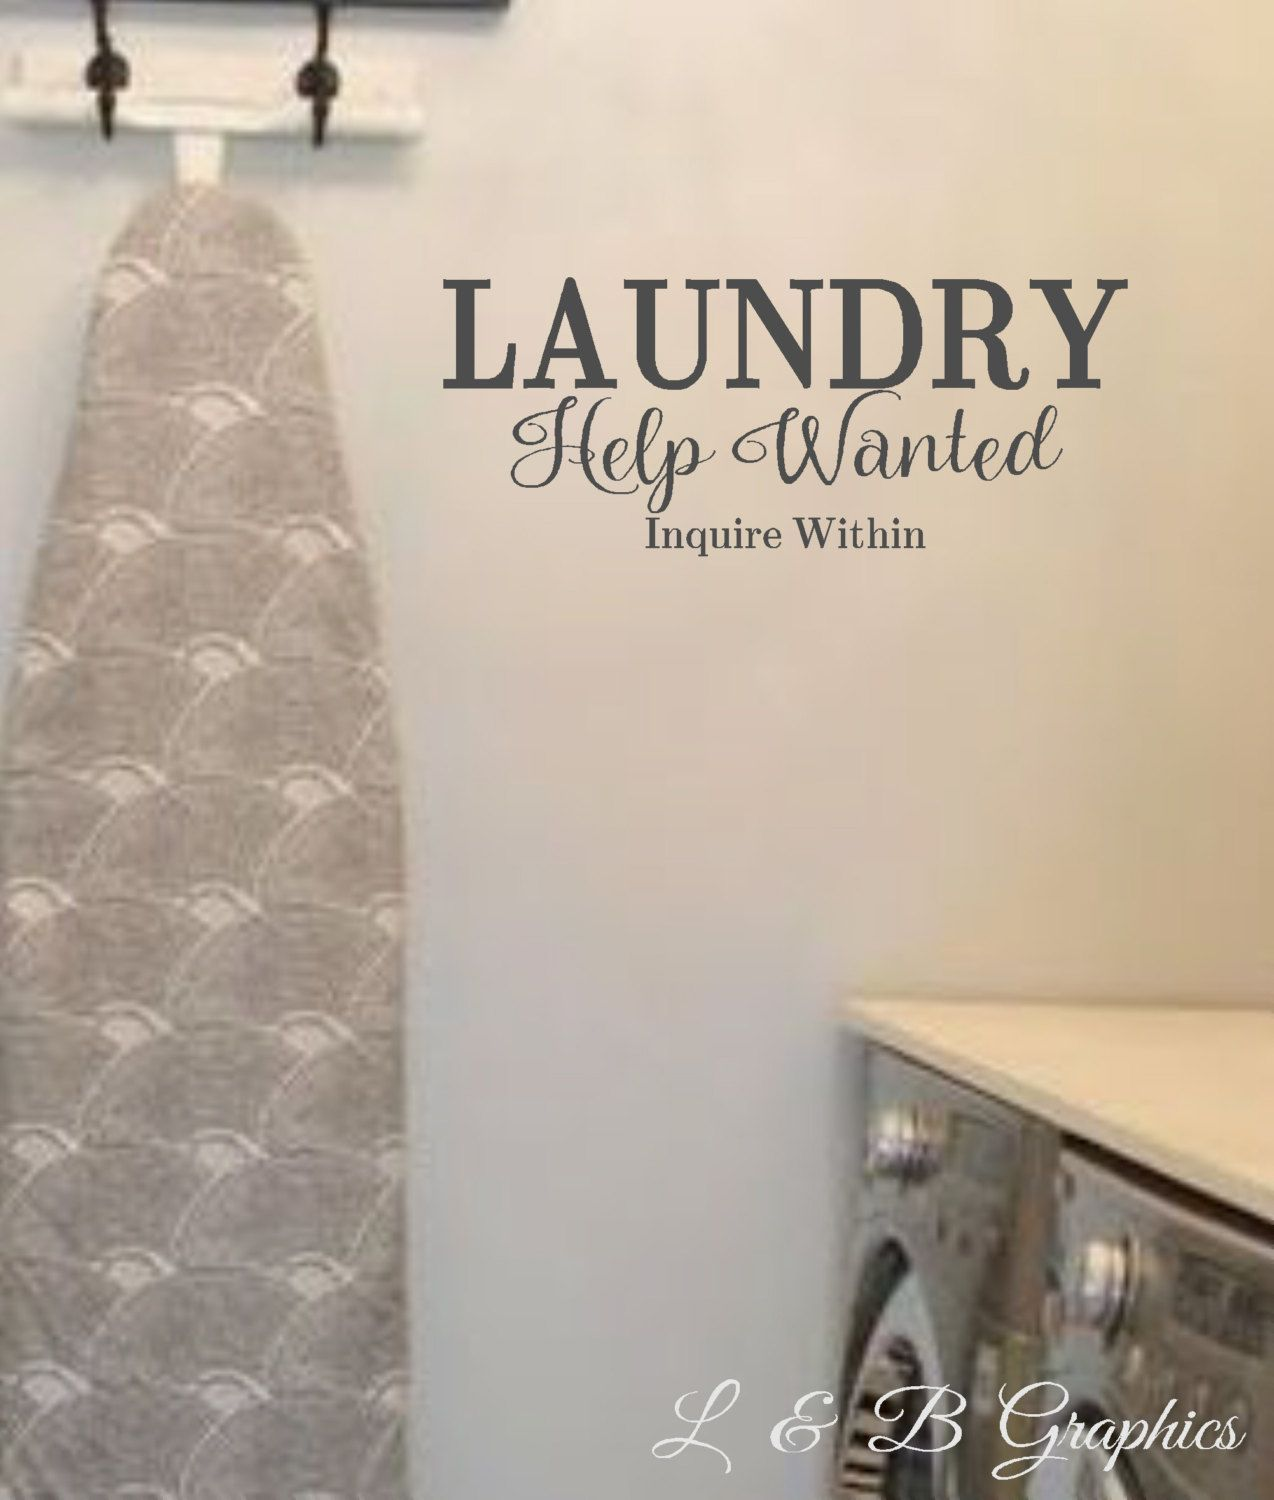 Laundry Room Wall Sayings Adorable Laundry Help Wanted Vinyl Wall Decal Laundry Room Decor Humor Review